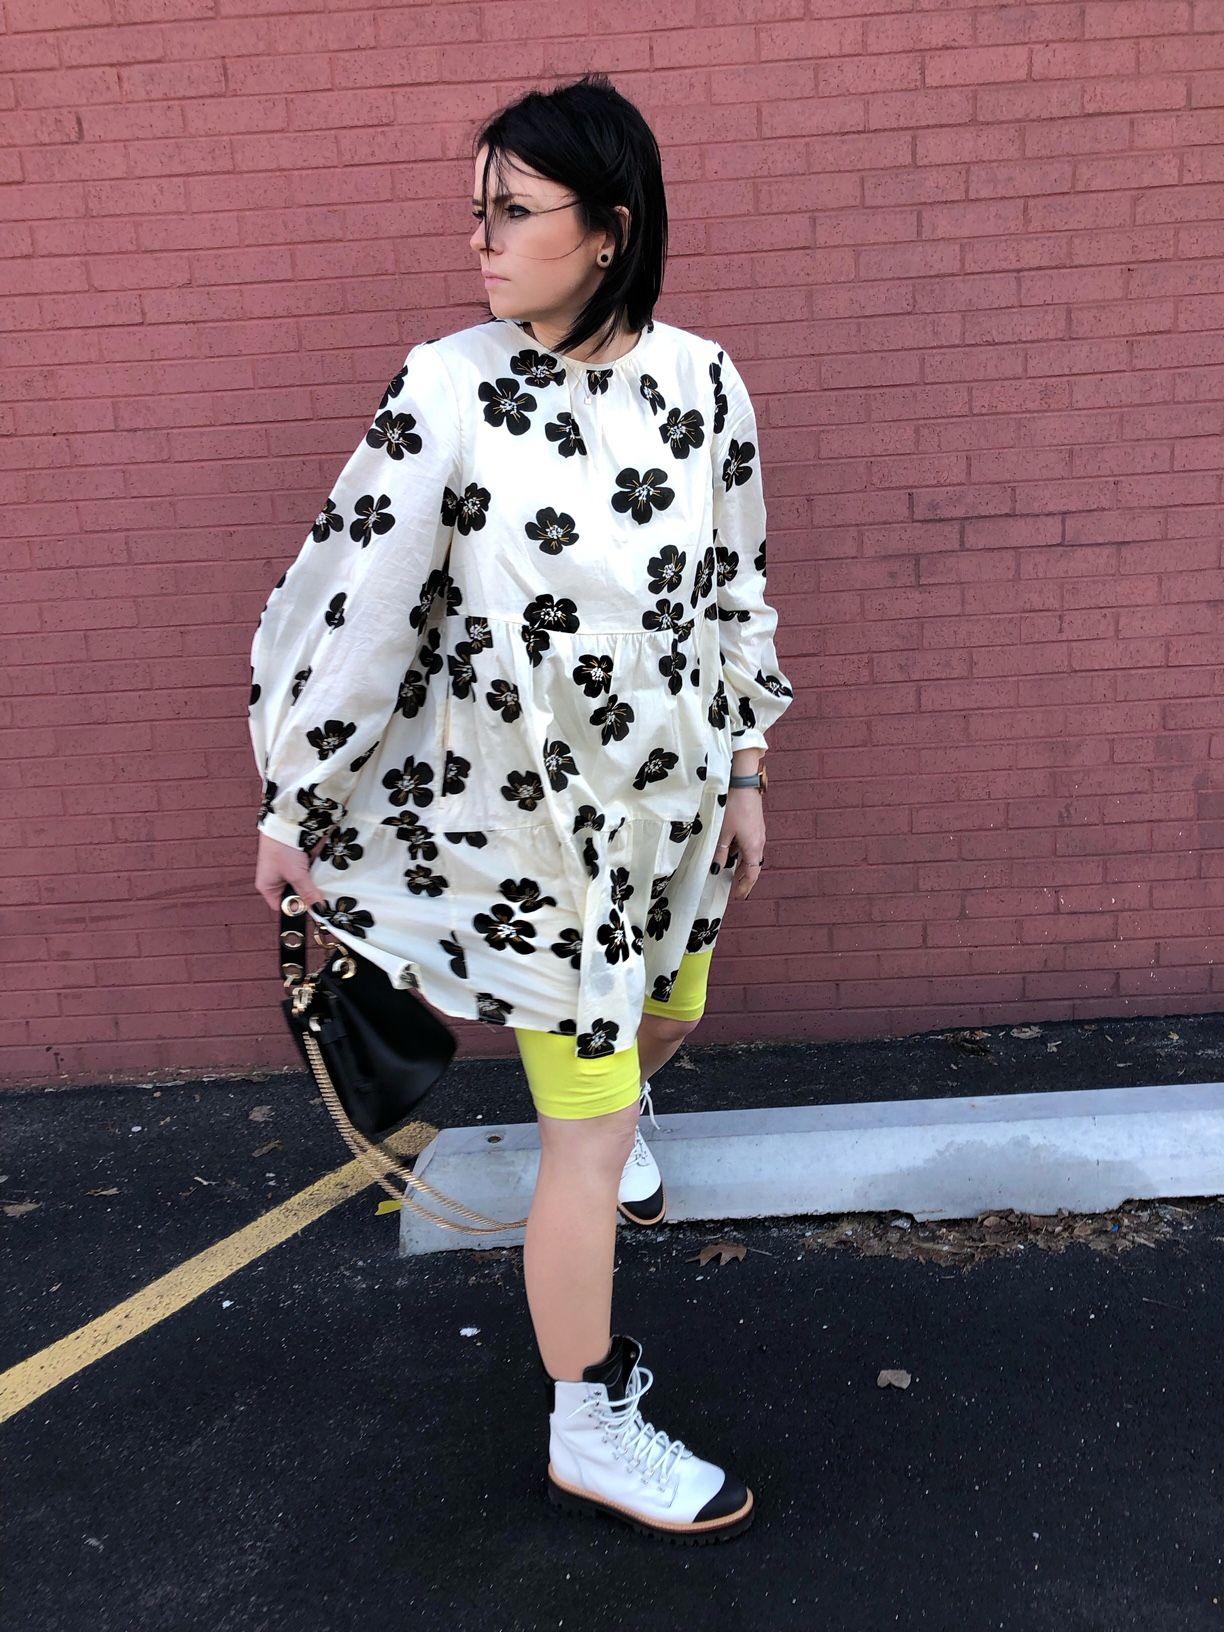 The Floral Dress You Need Right Now Some Pop Of Color White Dress Summer White Long Sleeve Dress How To Style Combat Boots [ 1632 x 1224 Pixel ]